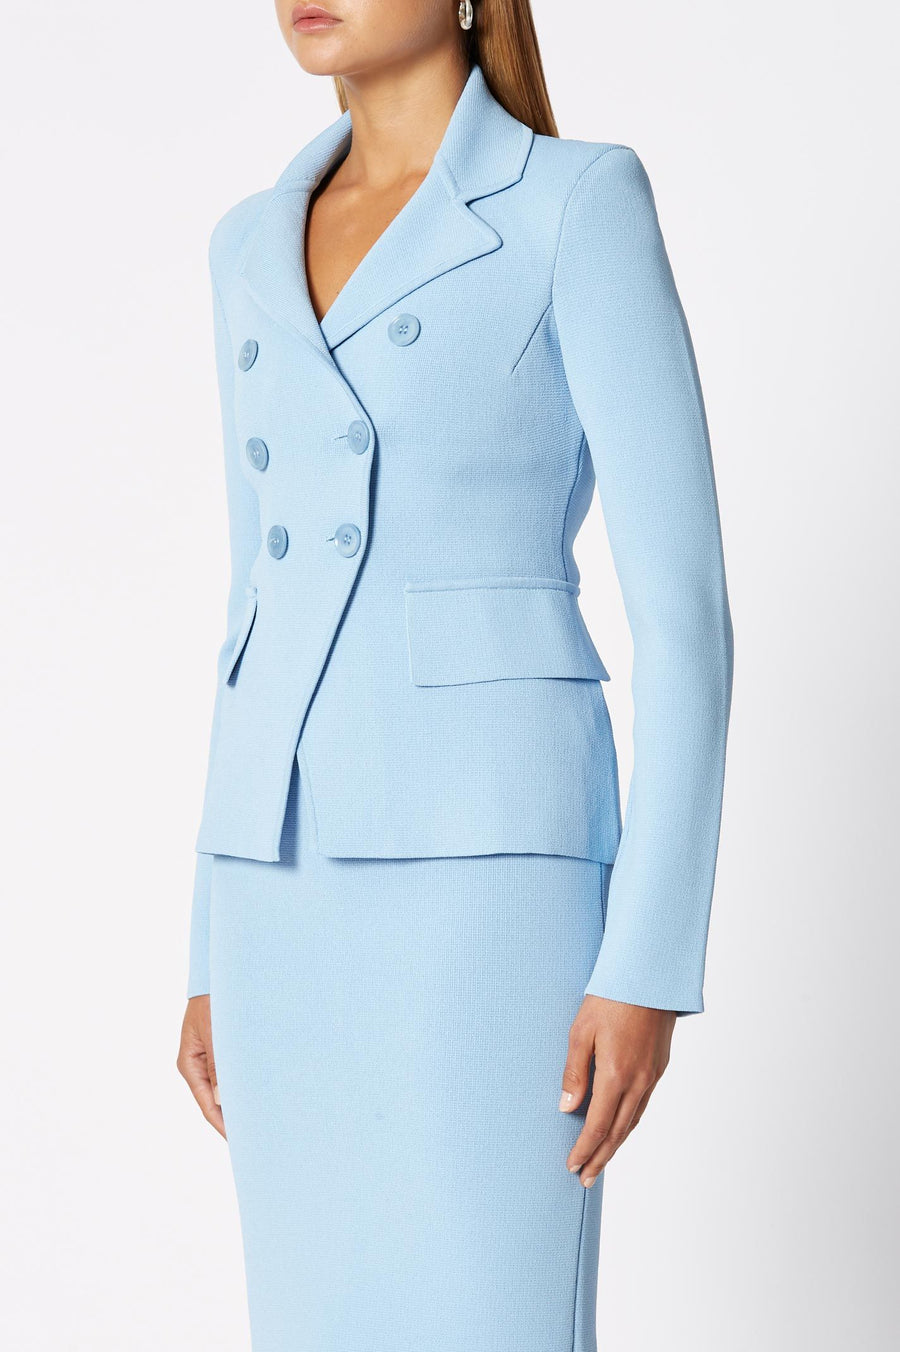 CREPE KNIT TAILORED JACKET PALE BLUE, Knit tailored double-breasted jacket, Flap pockets